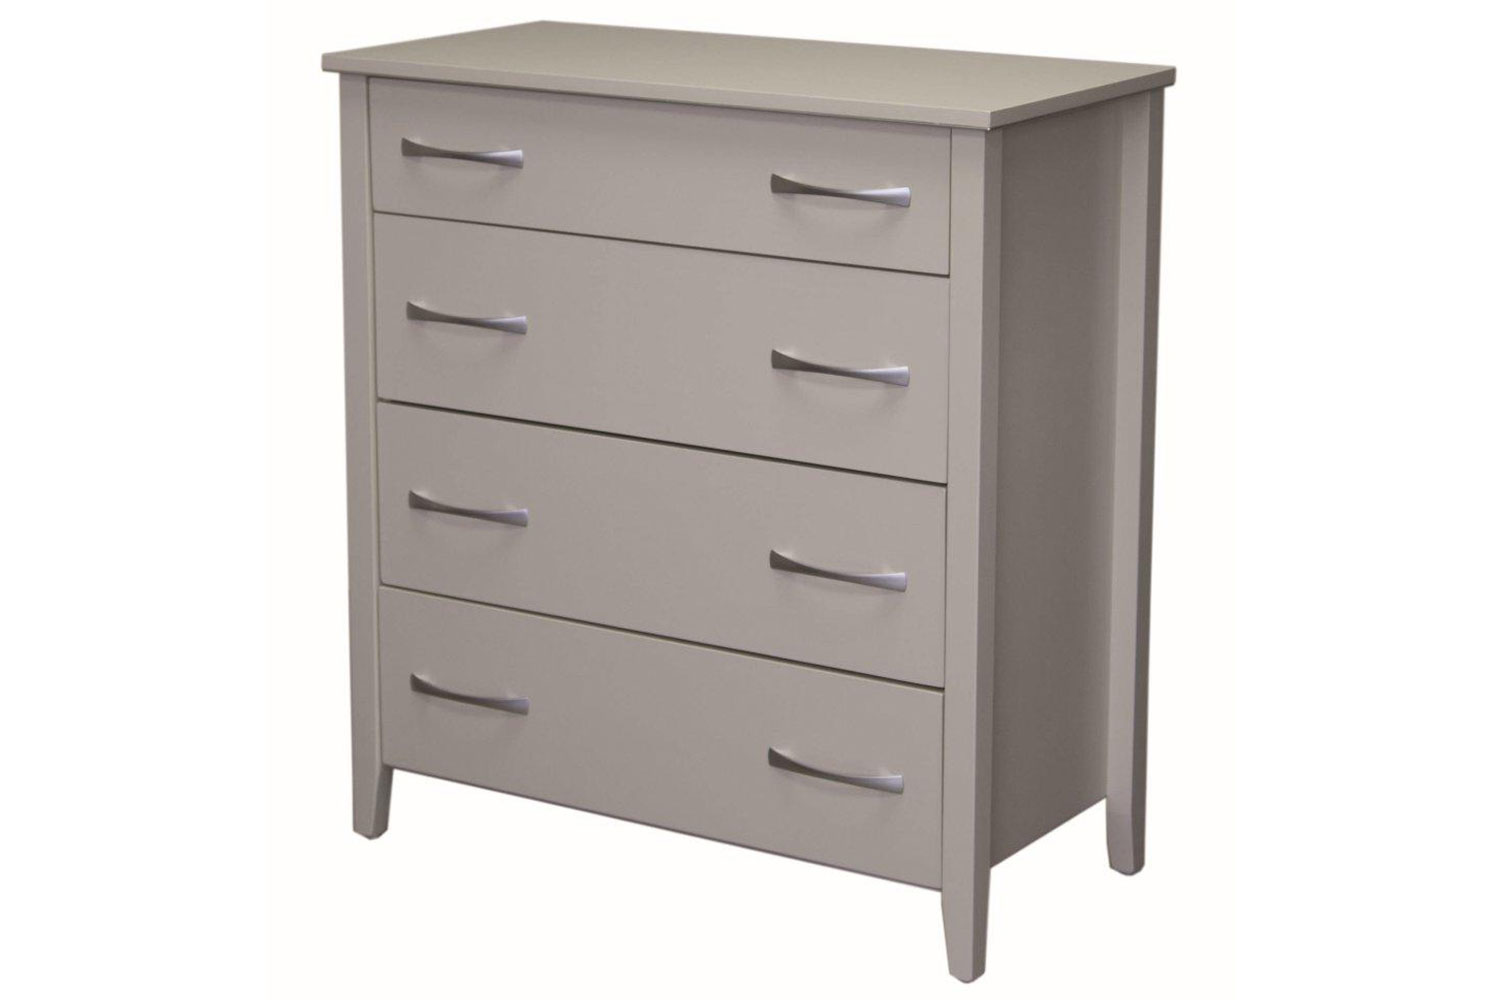 Chicago 4 Drawer Tallboy By Coastwood Furniture Harvey Norman New Zealand